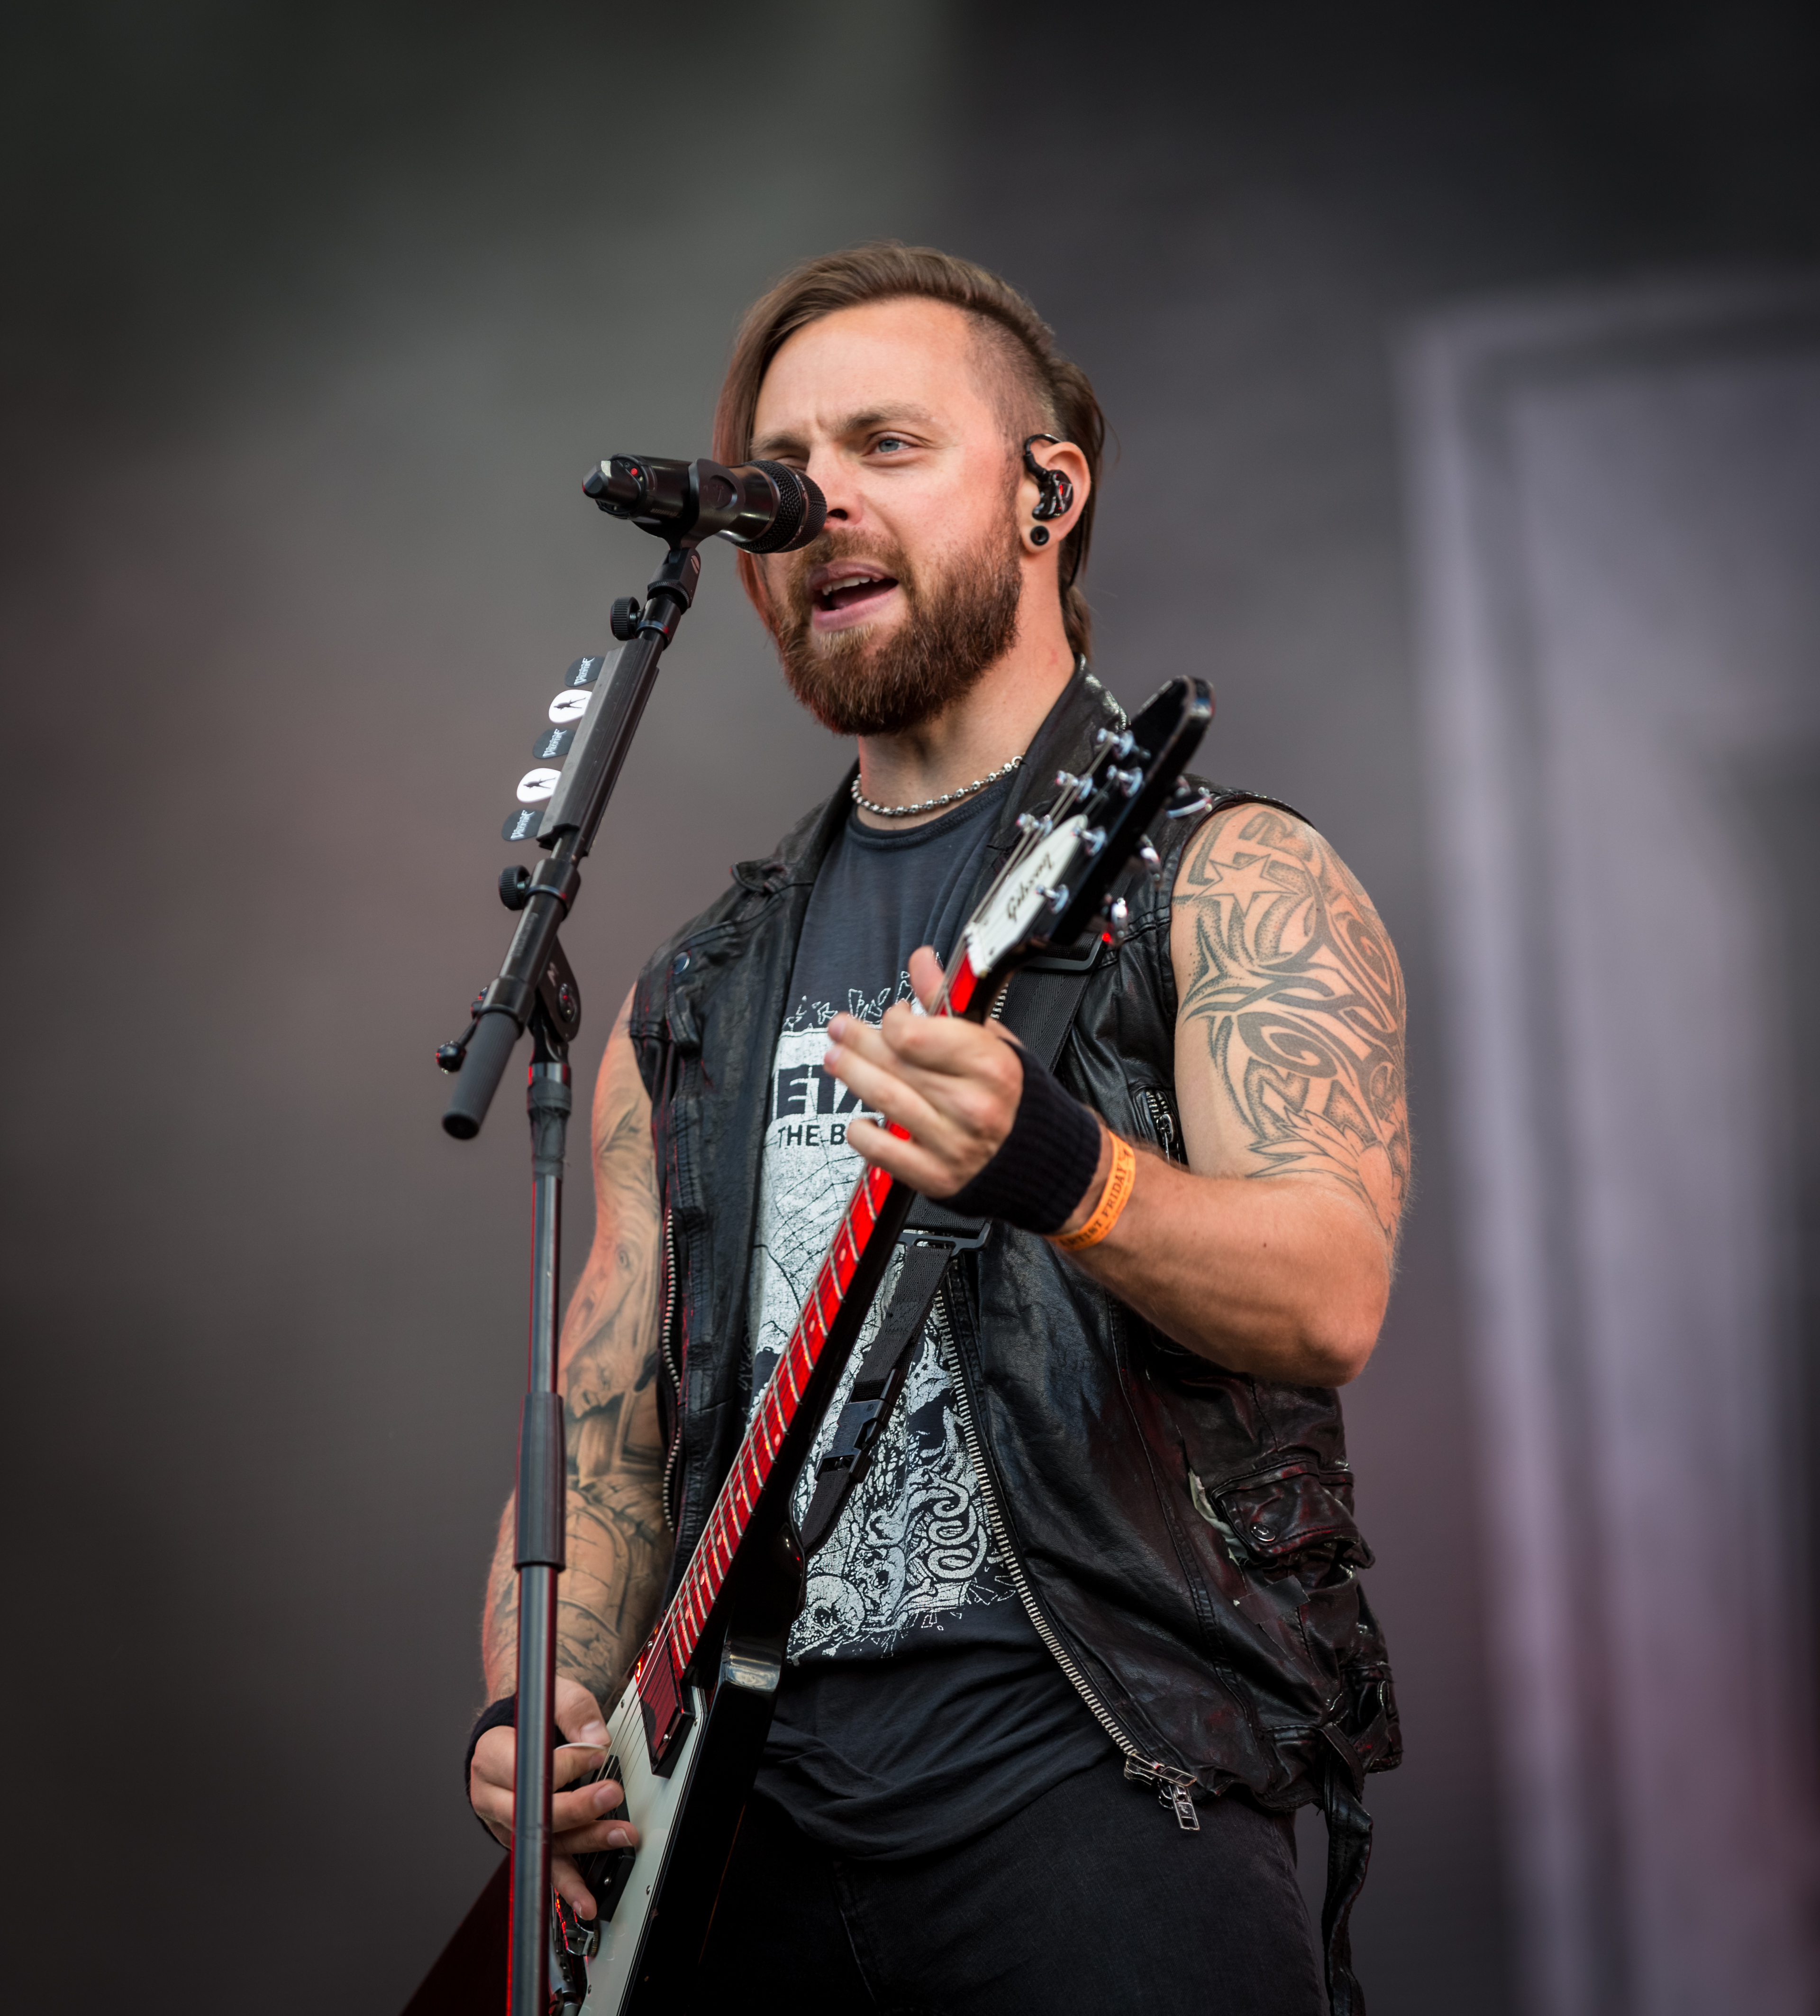 Bullet for my valentine wacken open air 2016 al2261g bullet for my valentine wacken open air 2016 al2261g voltagebd Image collections